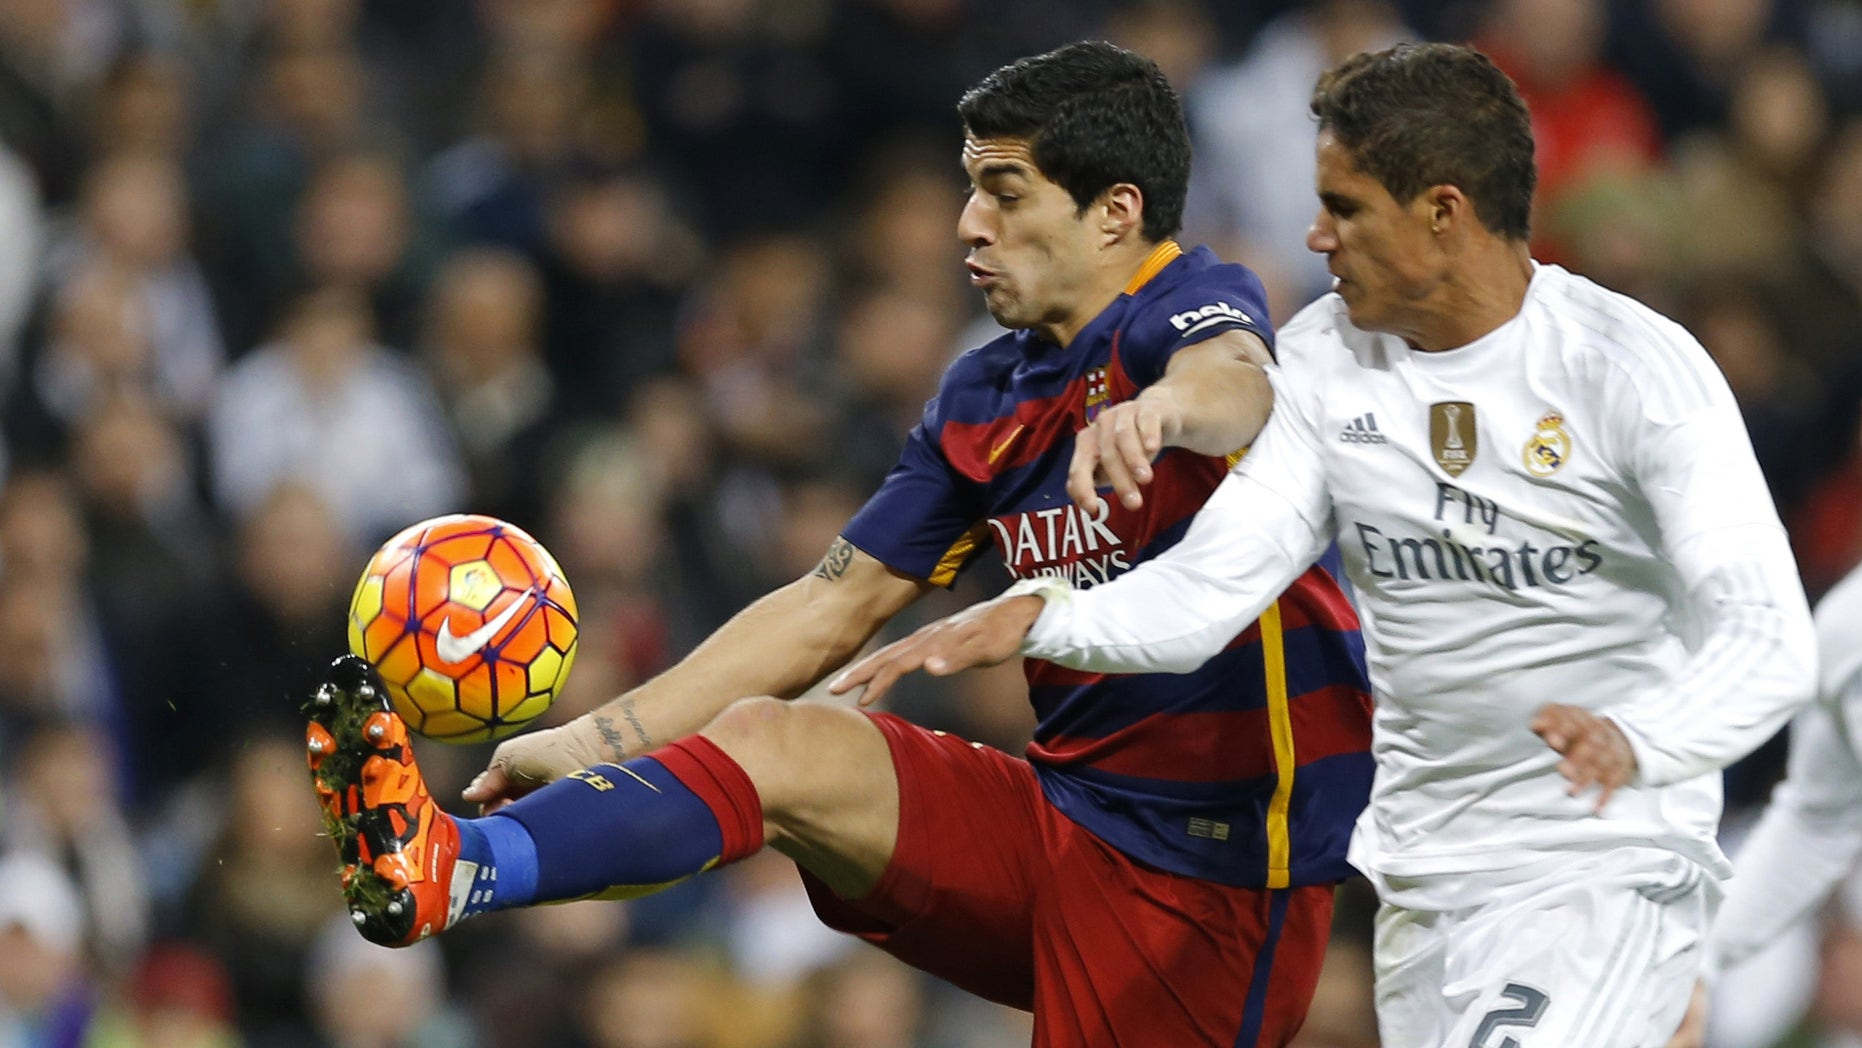 Barcelona's Luis Suarez fights for the ball with Real Madrid's Raphael Varane during the first clasico of the season between Real Madrid and Barcelona at the Santiago Bernabeu stadium in Madrid, Spain, Saturday, Nov. 21, 2015.  (AP Photo/Francisco Seco)